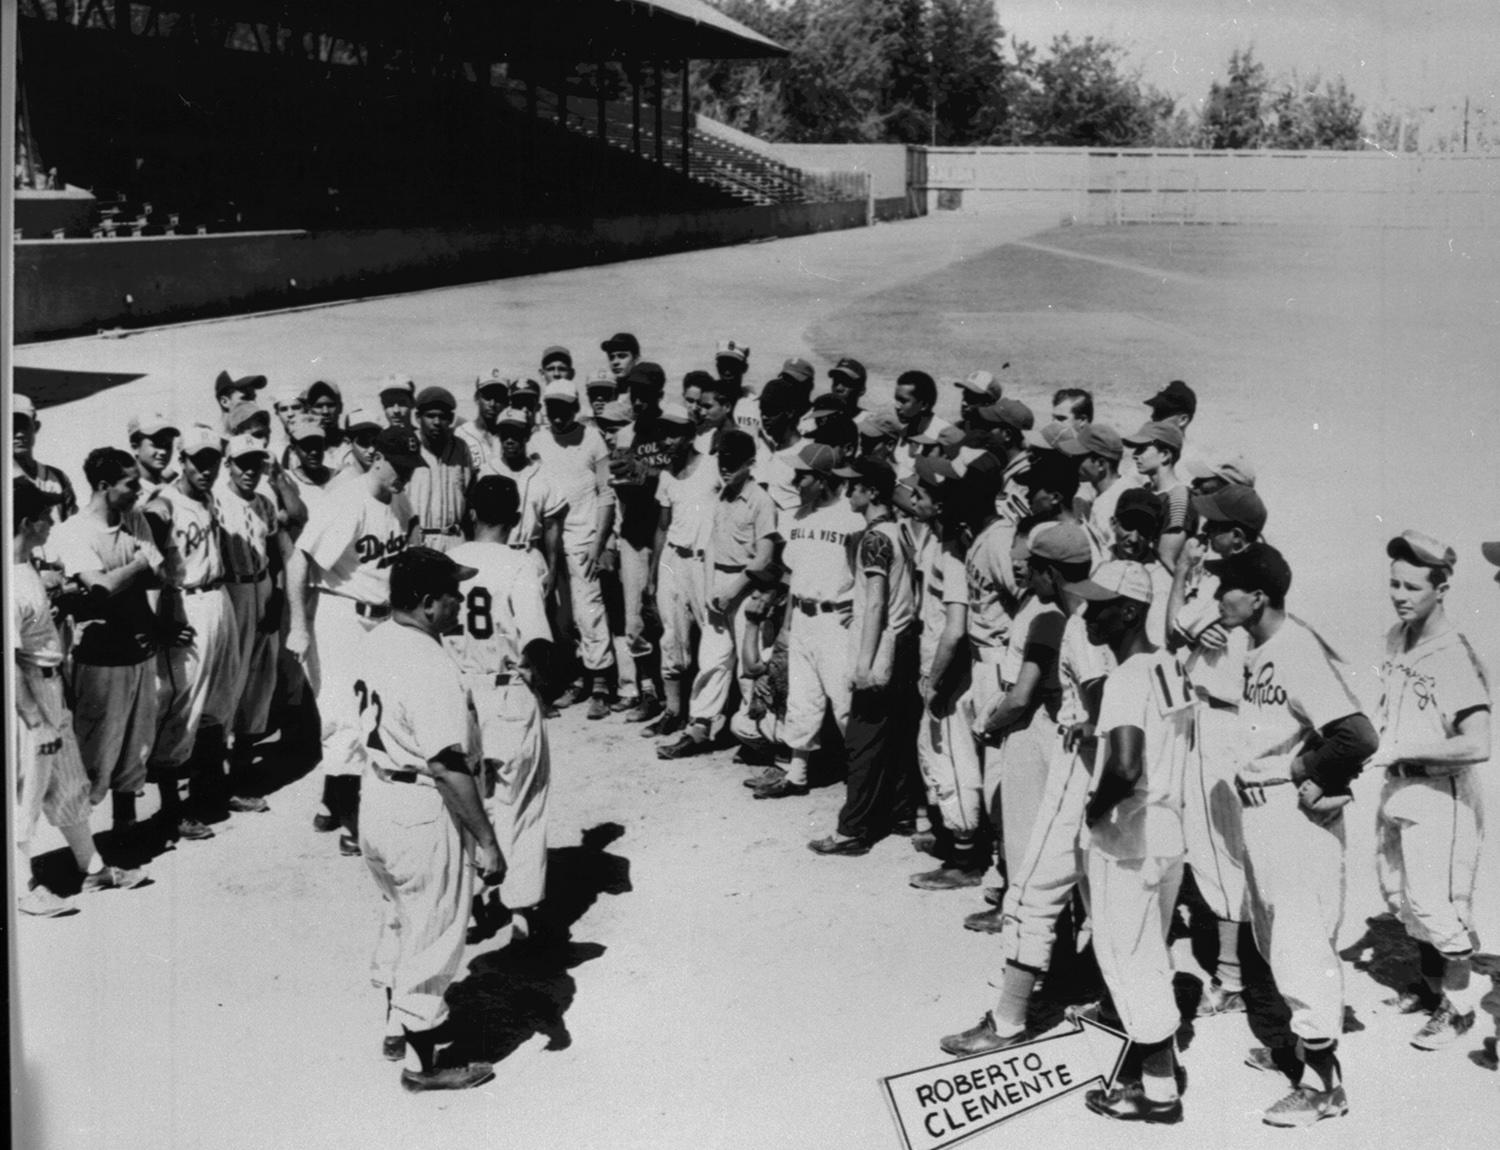 Roberto Clemente, pictured above at the Brooklyn Dodgers' tryout camp in 1954. On the strength of a recommendation by Clyde Sukeforth, the Pirates took Clemente in the Rule 5 Draft following the 1954 season. (National Baseball Hall of Fame and Museum)